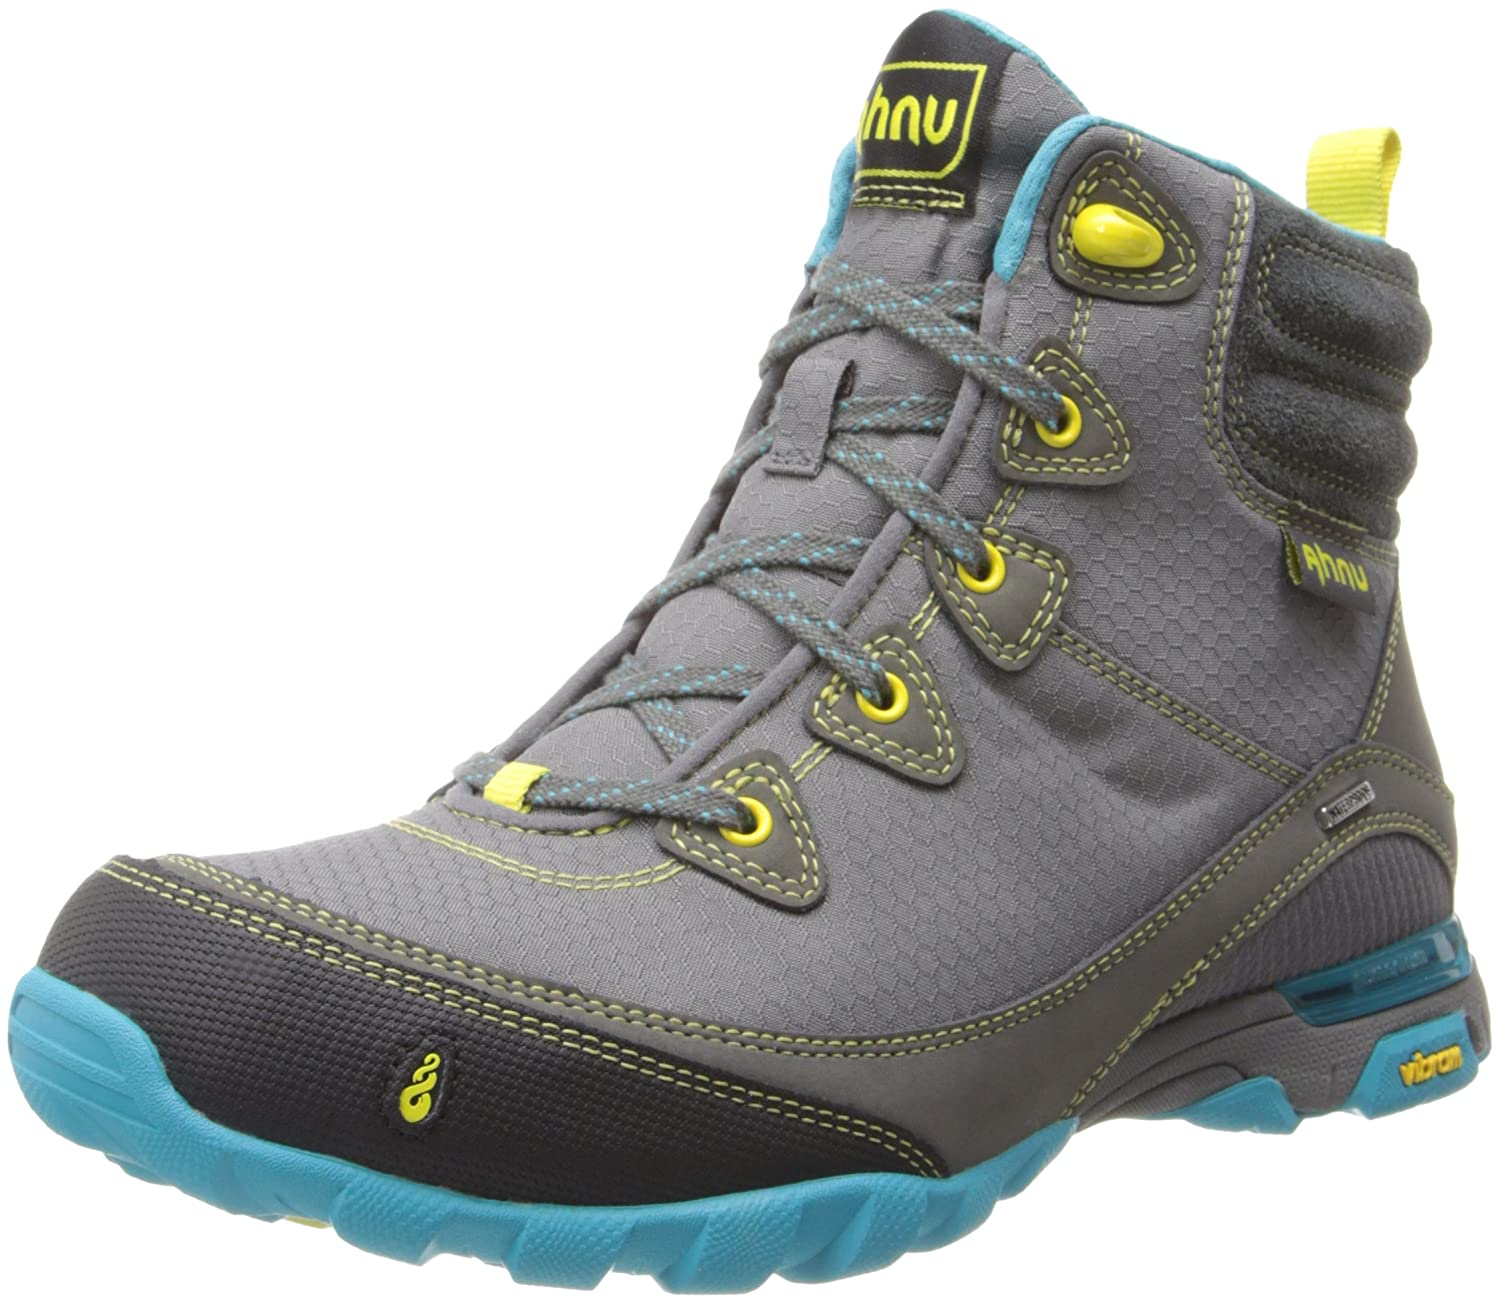 Ahnu Women's Sugarpine B(M) Hiking Boot B00BBLWY1A 7 B(M) Sugarpine US|Dark Grey 0c9e35